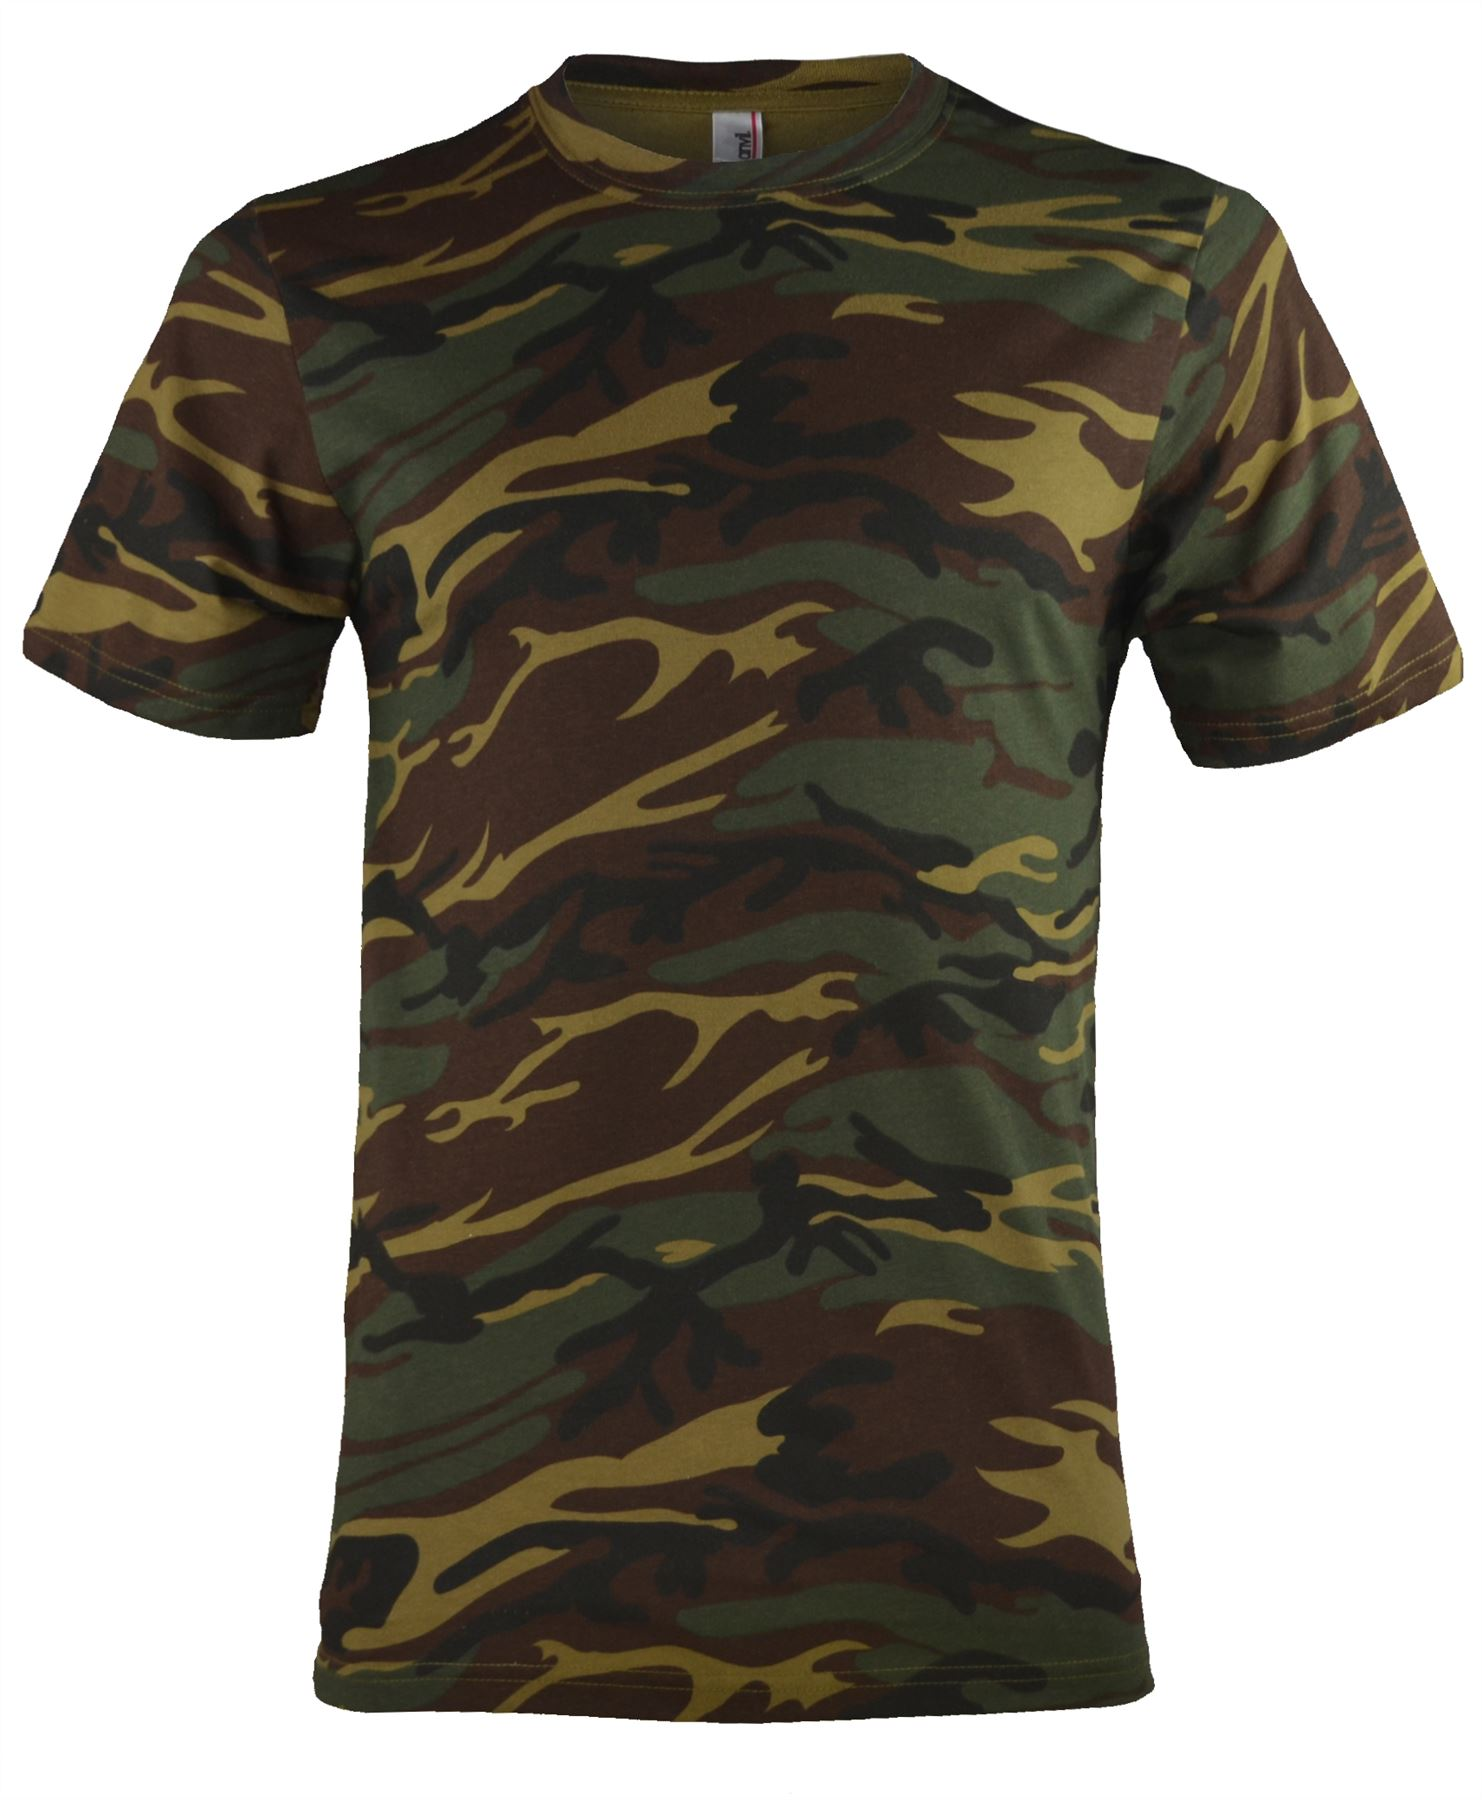 Mens military camouflage army print t shirt 100 cotton for Camouflage t shirt printing